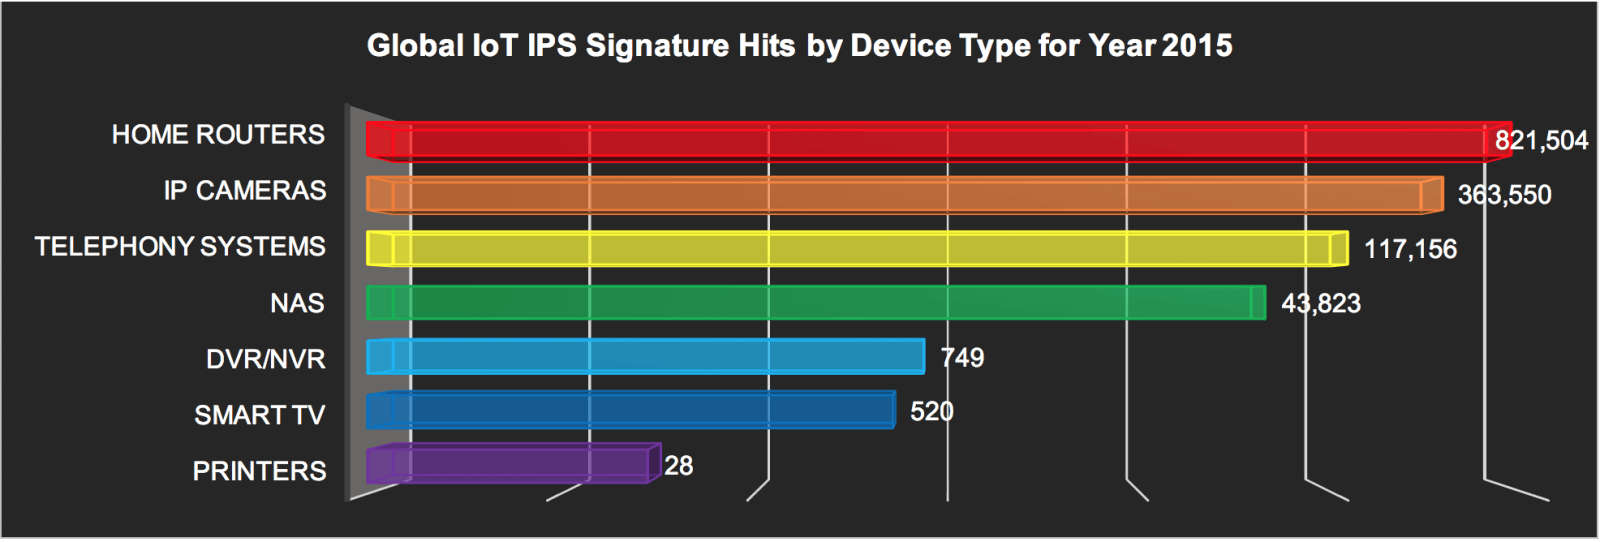 GLOBAL IoT IPS signature hits by device – 2015